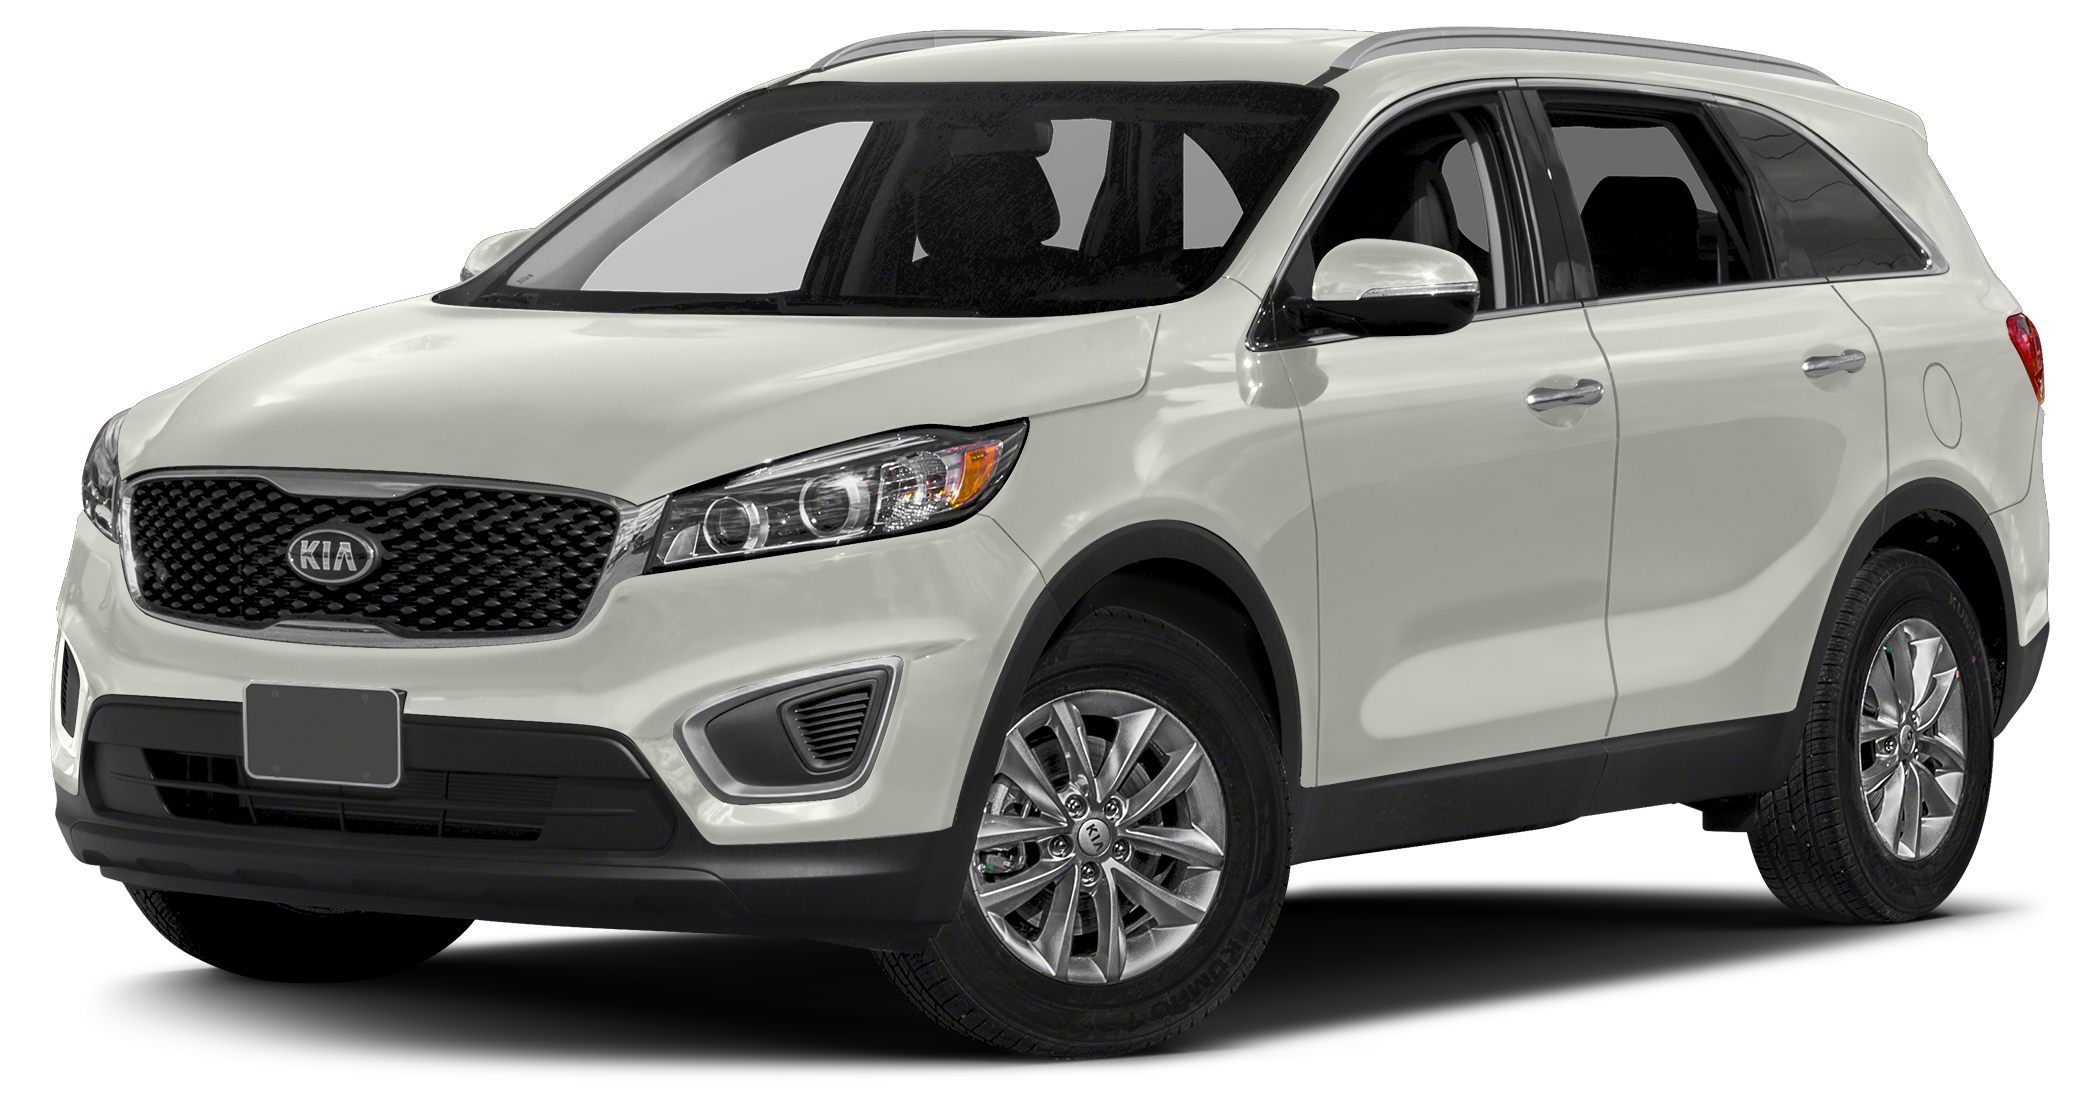 2017 Kia Sorento 33 LX LOW INTEREST FINANCING AVAILABLE AWD 33L DOHC AWD Clean CARFAX 4D Spor